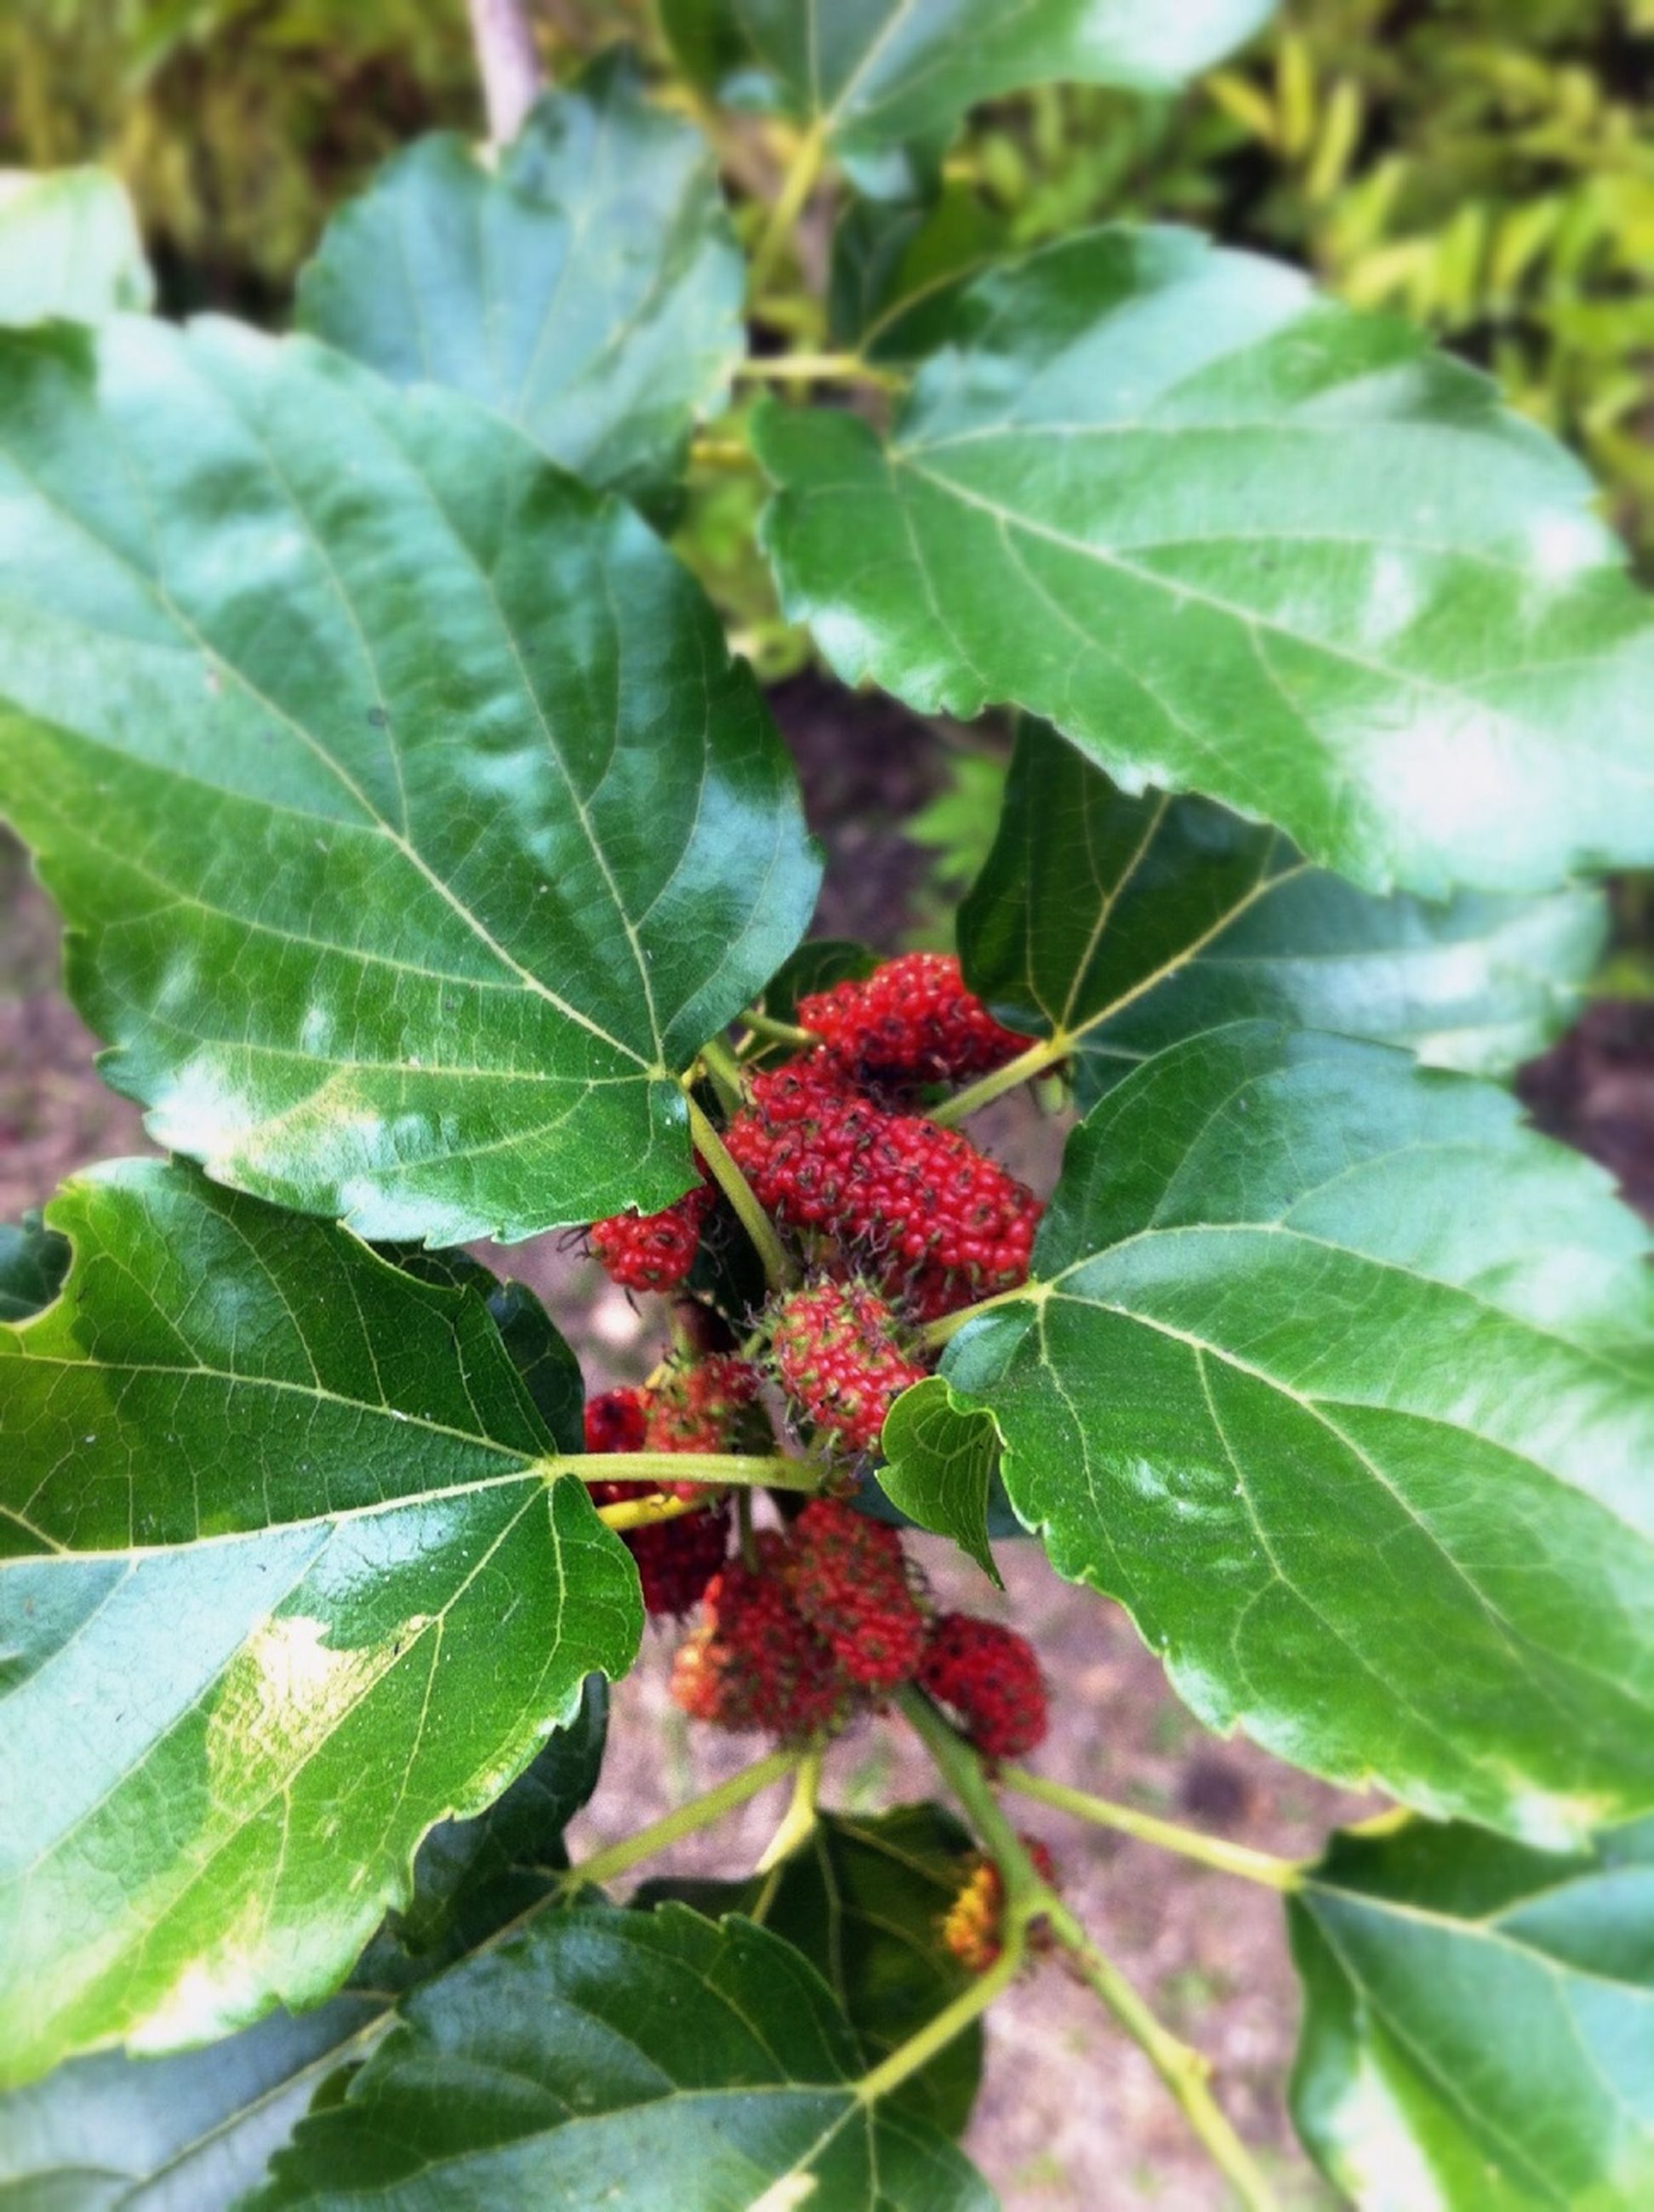 leaf, red, fruit, growth, freshness, food and drink, plant, close-up, green color, nature, berry fruit, focus on foreground, food, beauty in nature, berry, day, tree, outdoors, ripe, no people